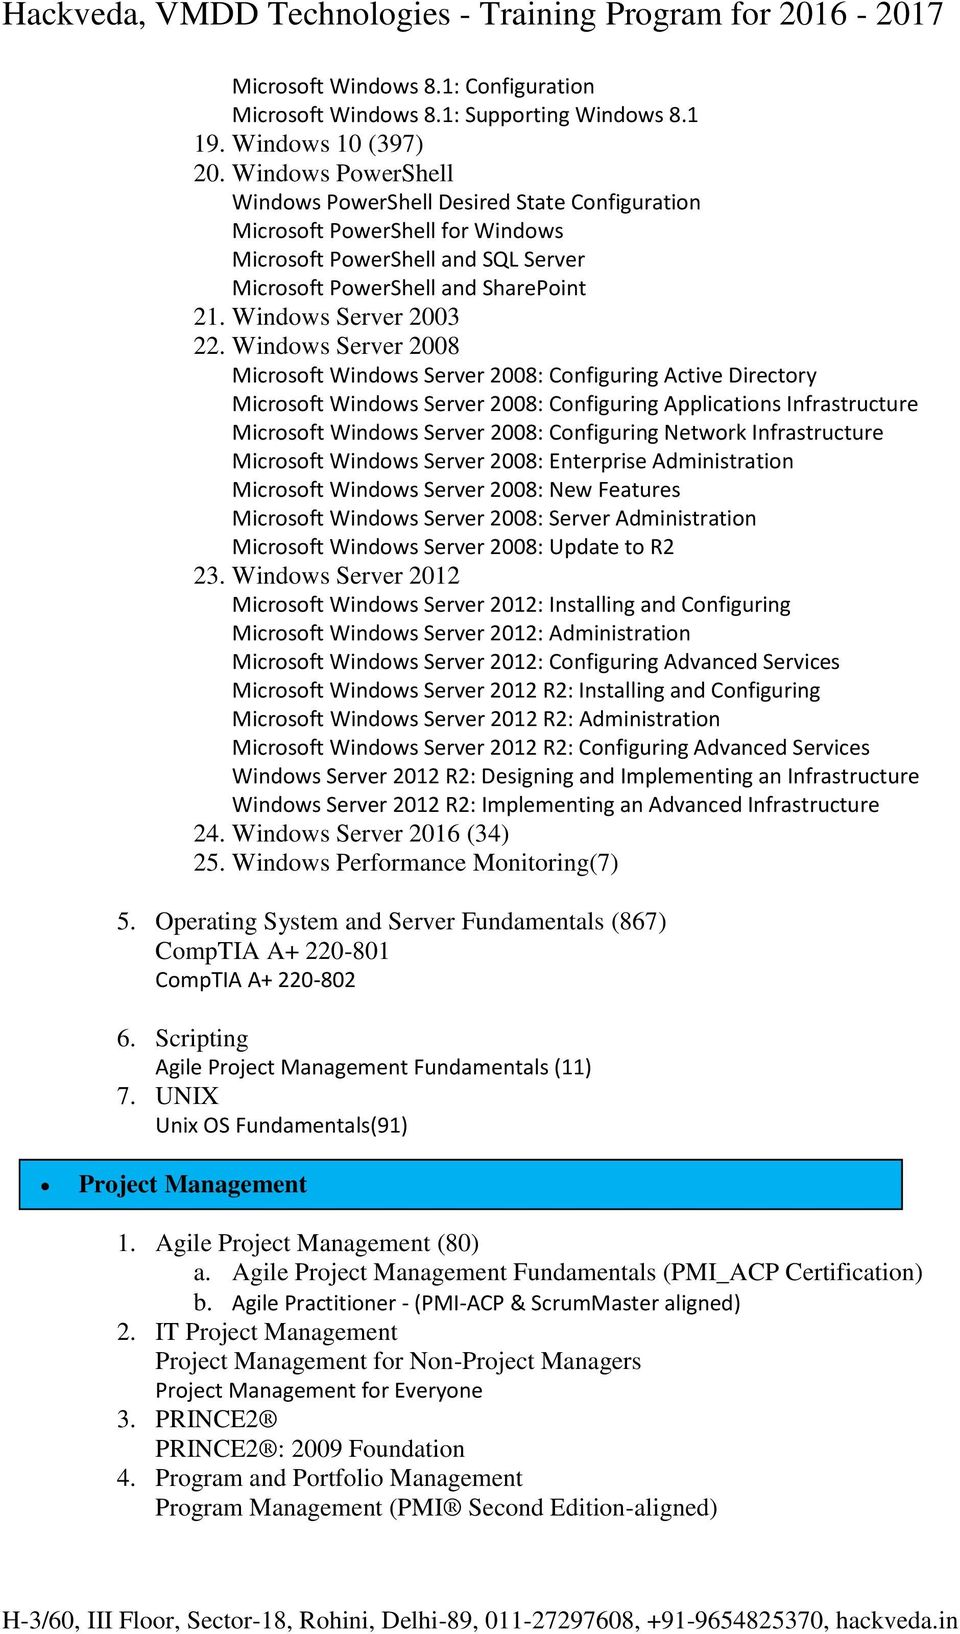 Windows Server 2008 Microsoft Windows Server 2008: Configuring Active Directory Microsoft Windows Server 2008: Configuring Applications Infrastructure Microsoft Windows Server 2008: Configuring